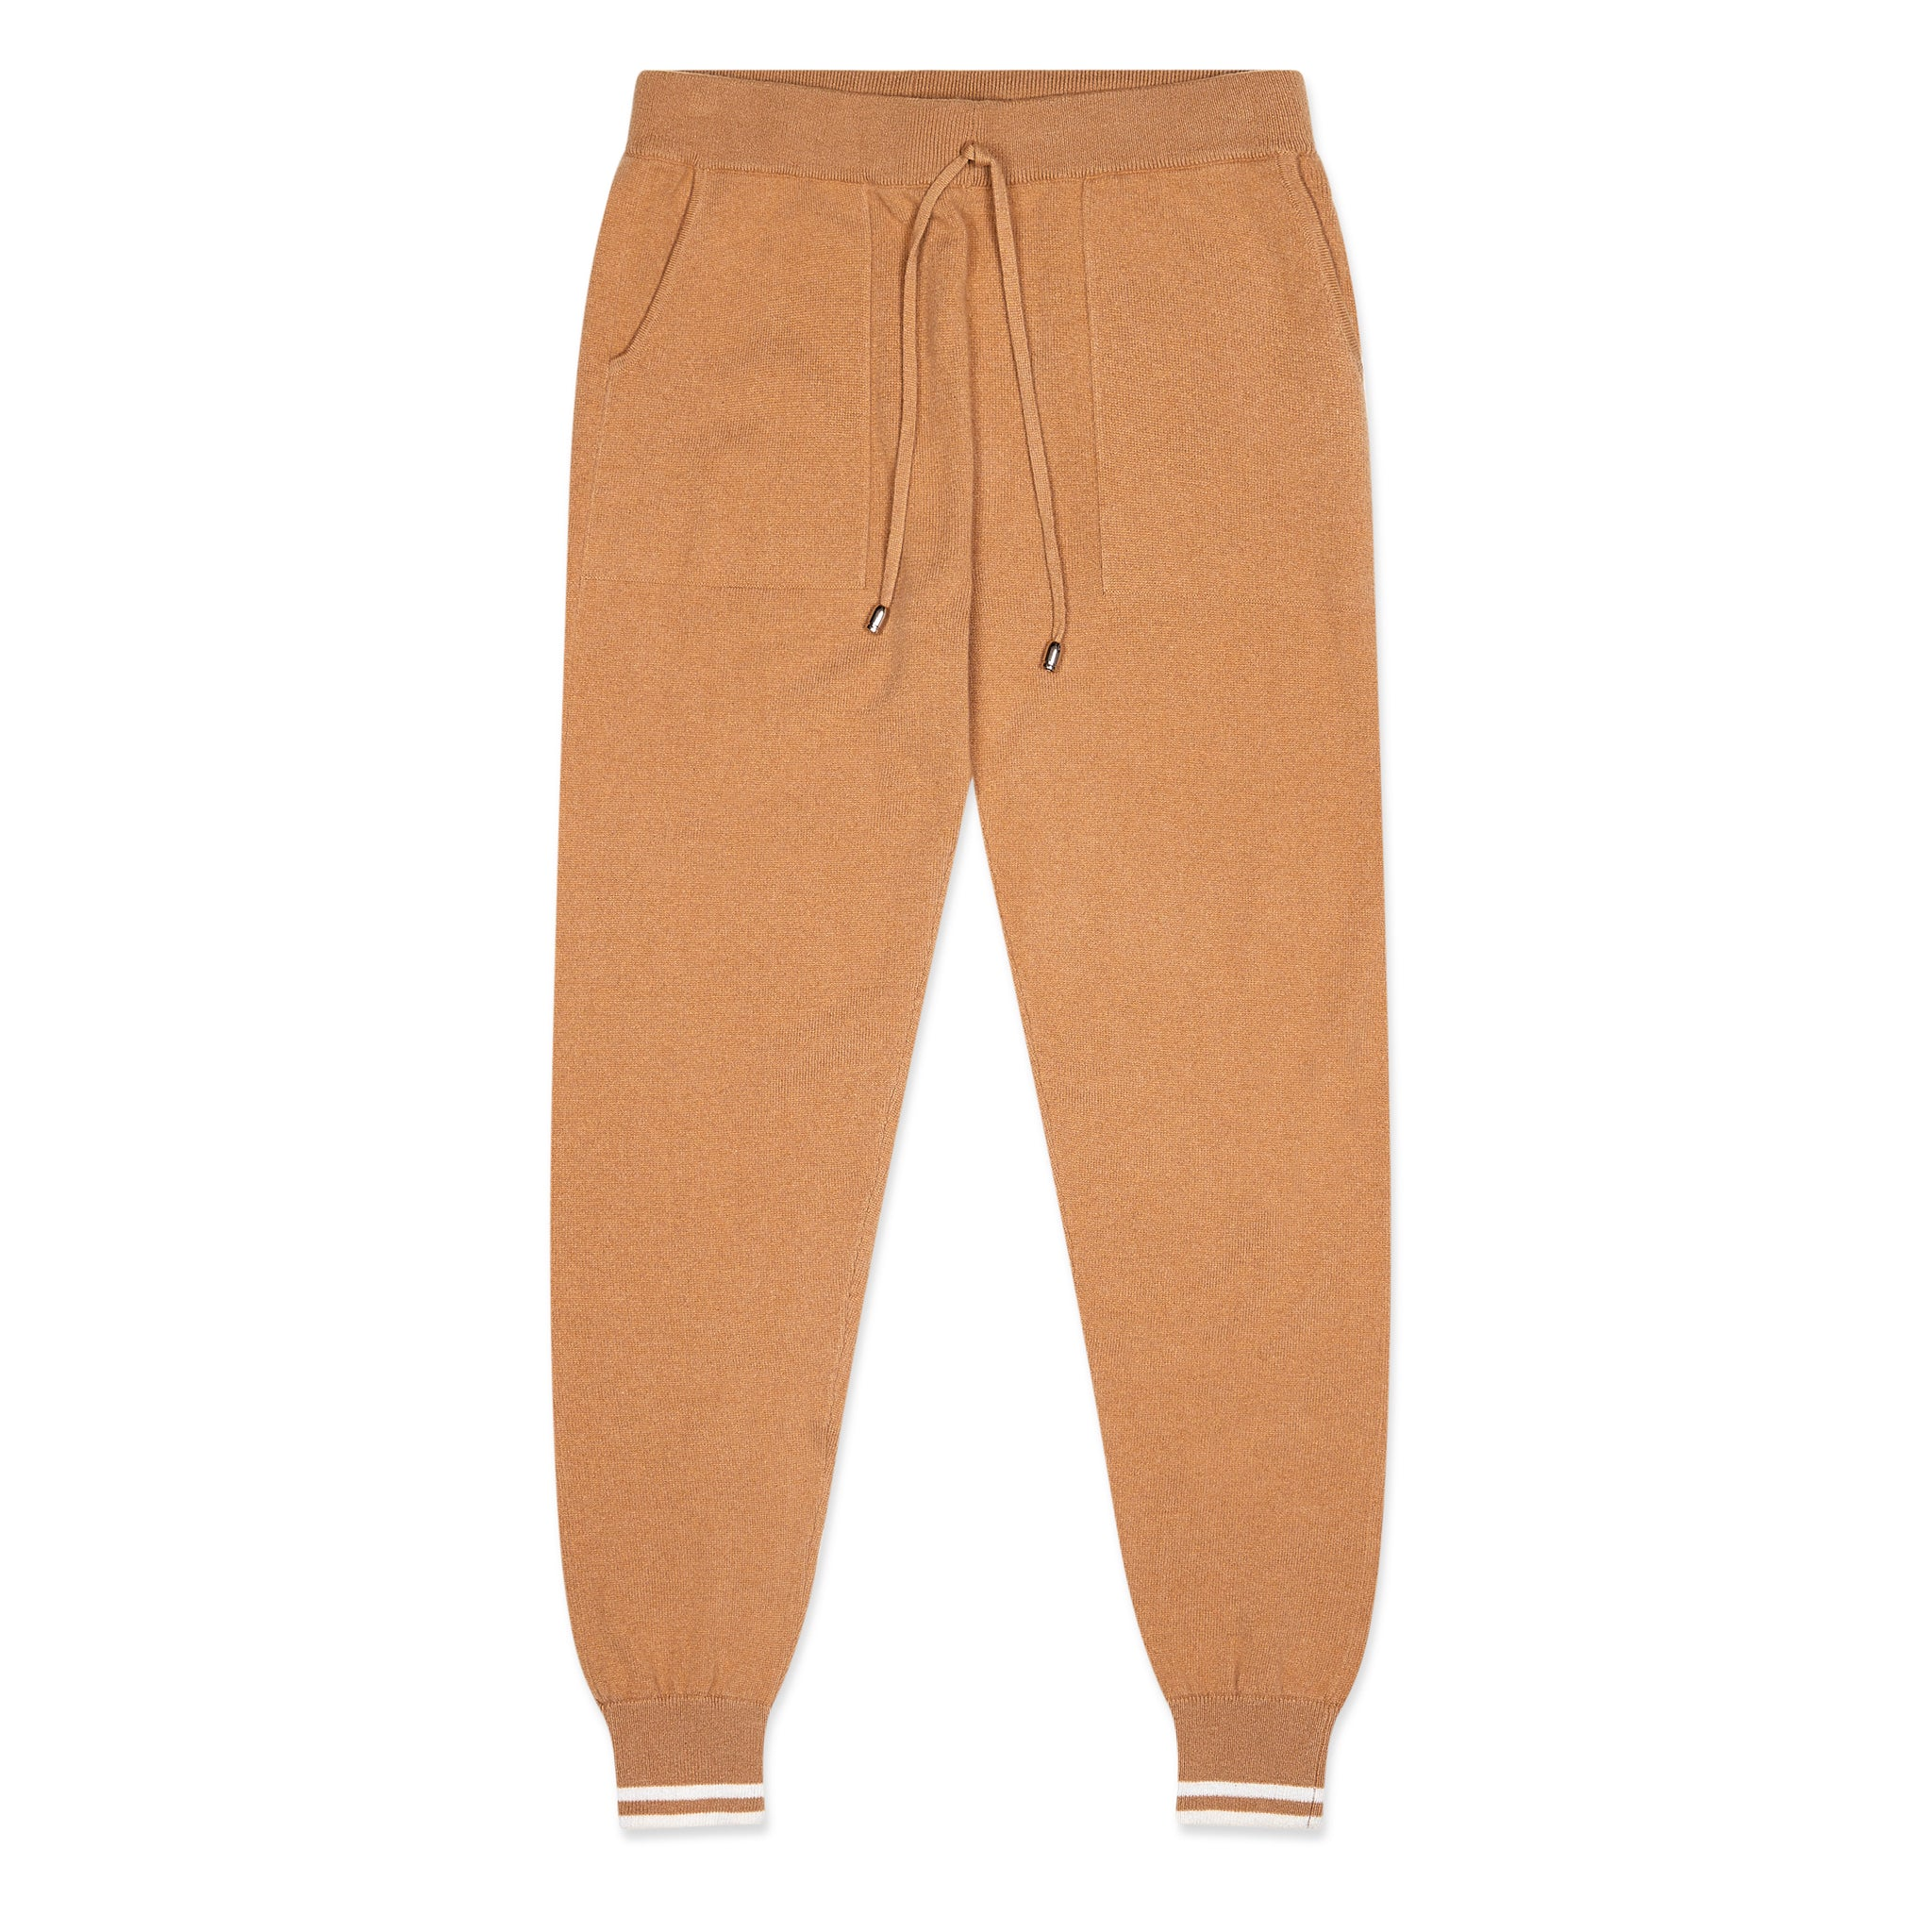 Tan Cashmere Pants